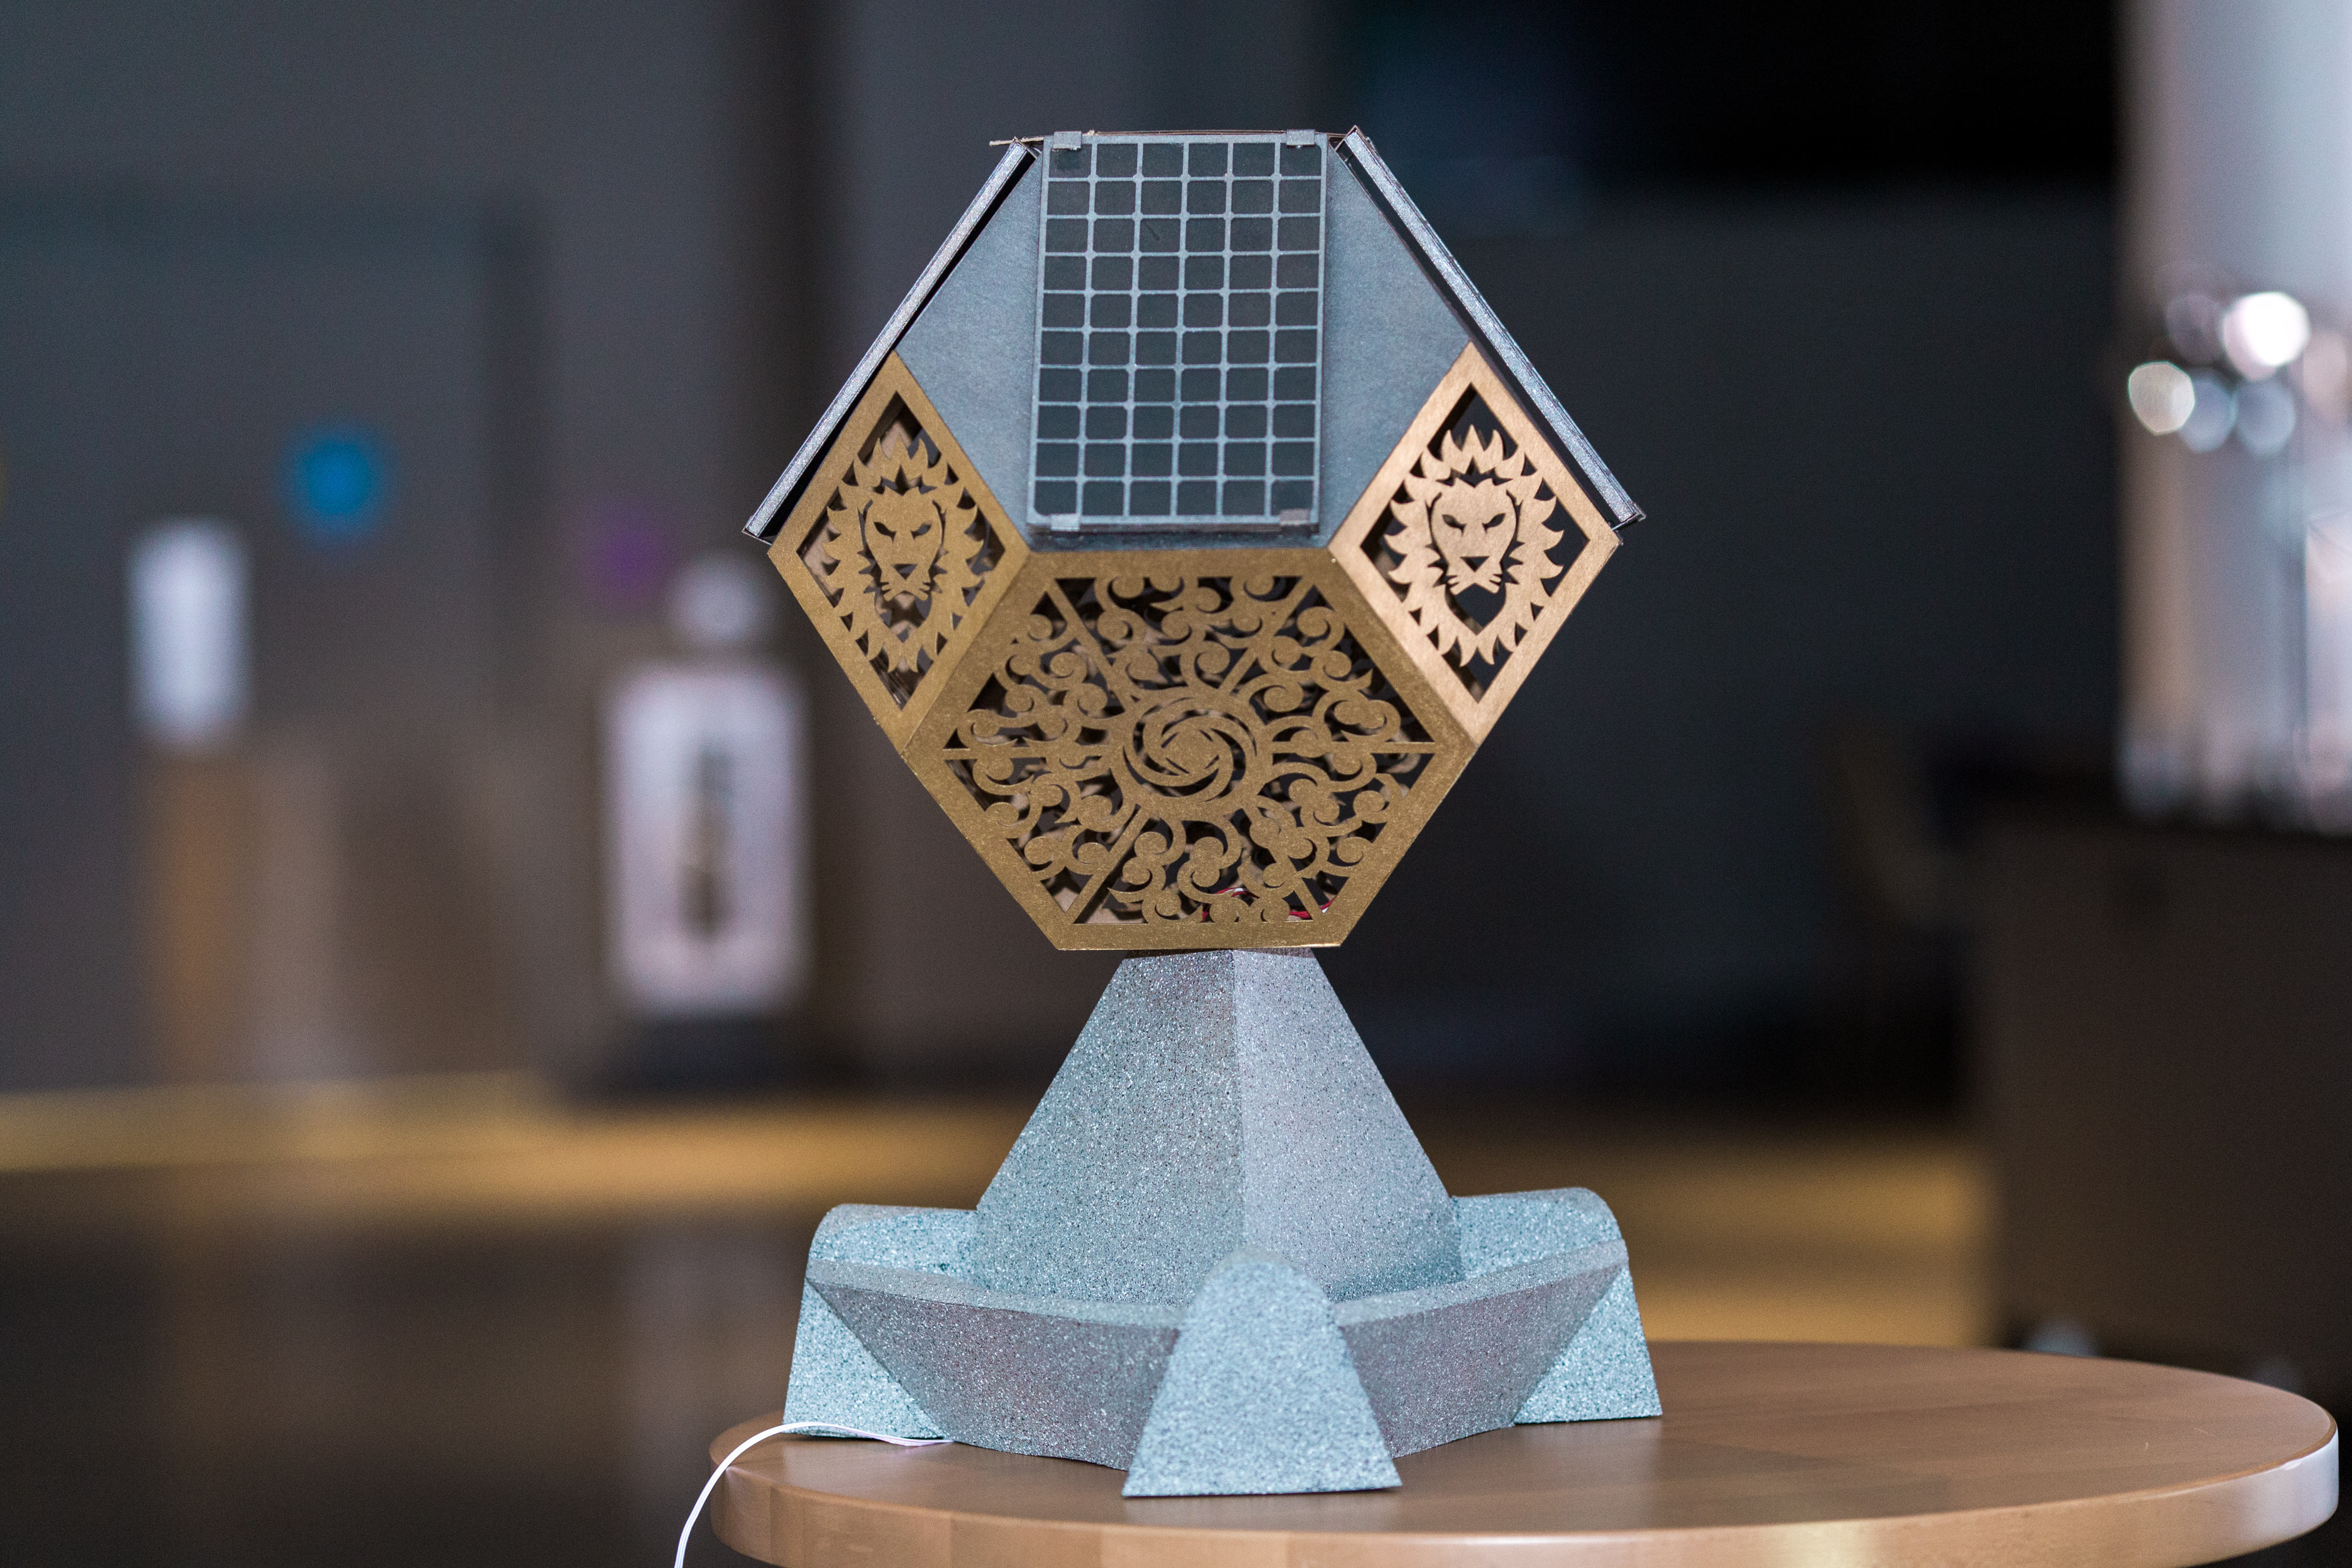 UCF-Designed Solar-Powered Sculpture to be Installed at Orlando City Stadium